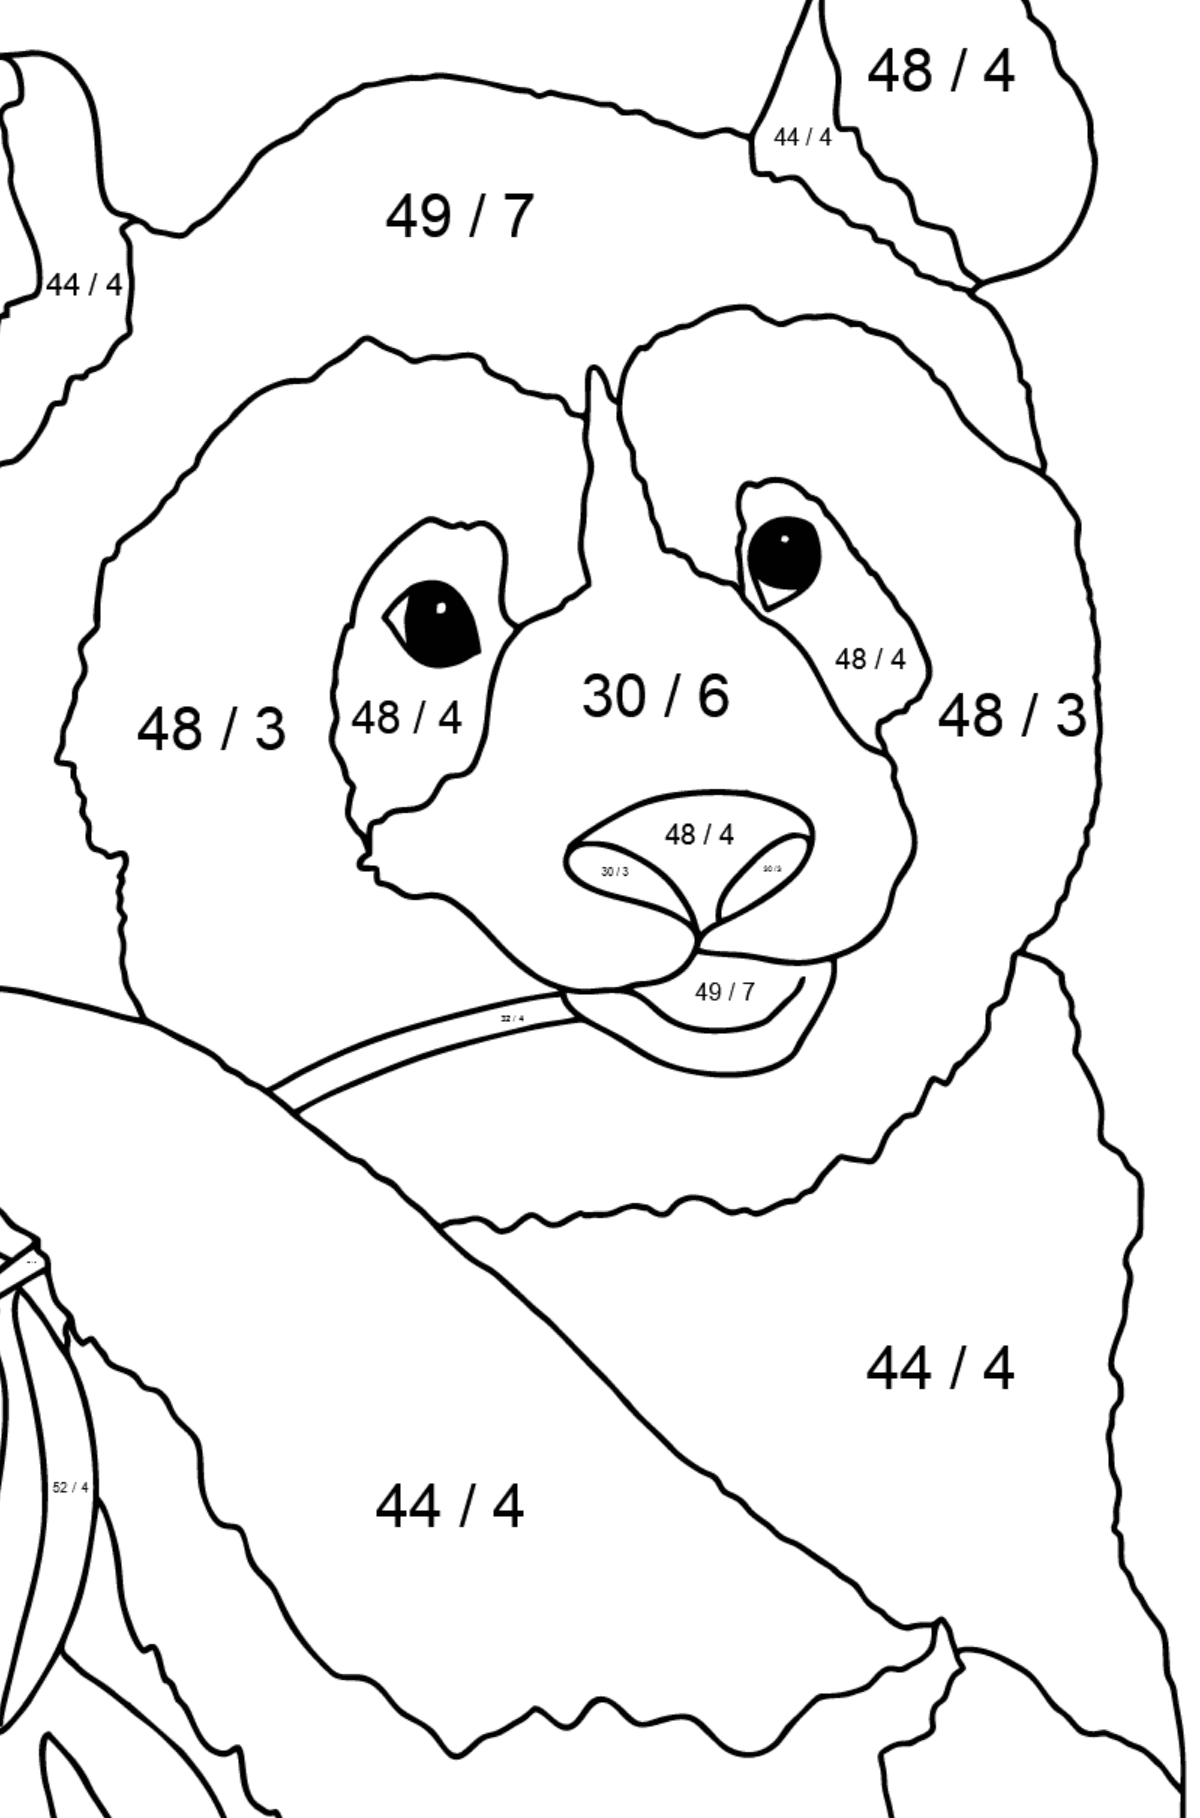 Coloring Page - A Panda is Eating Bamboo Stems and Leaves - Math Coloring - Division for Children